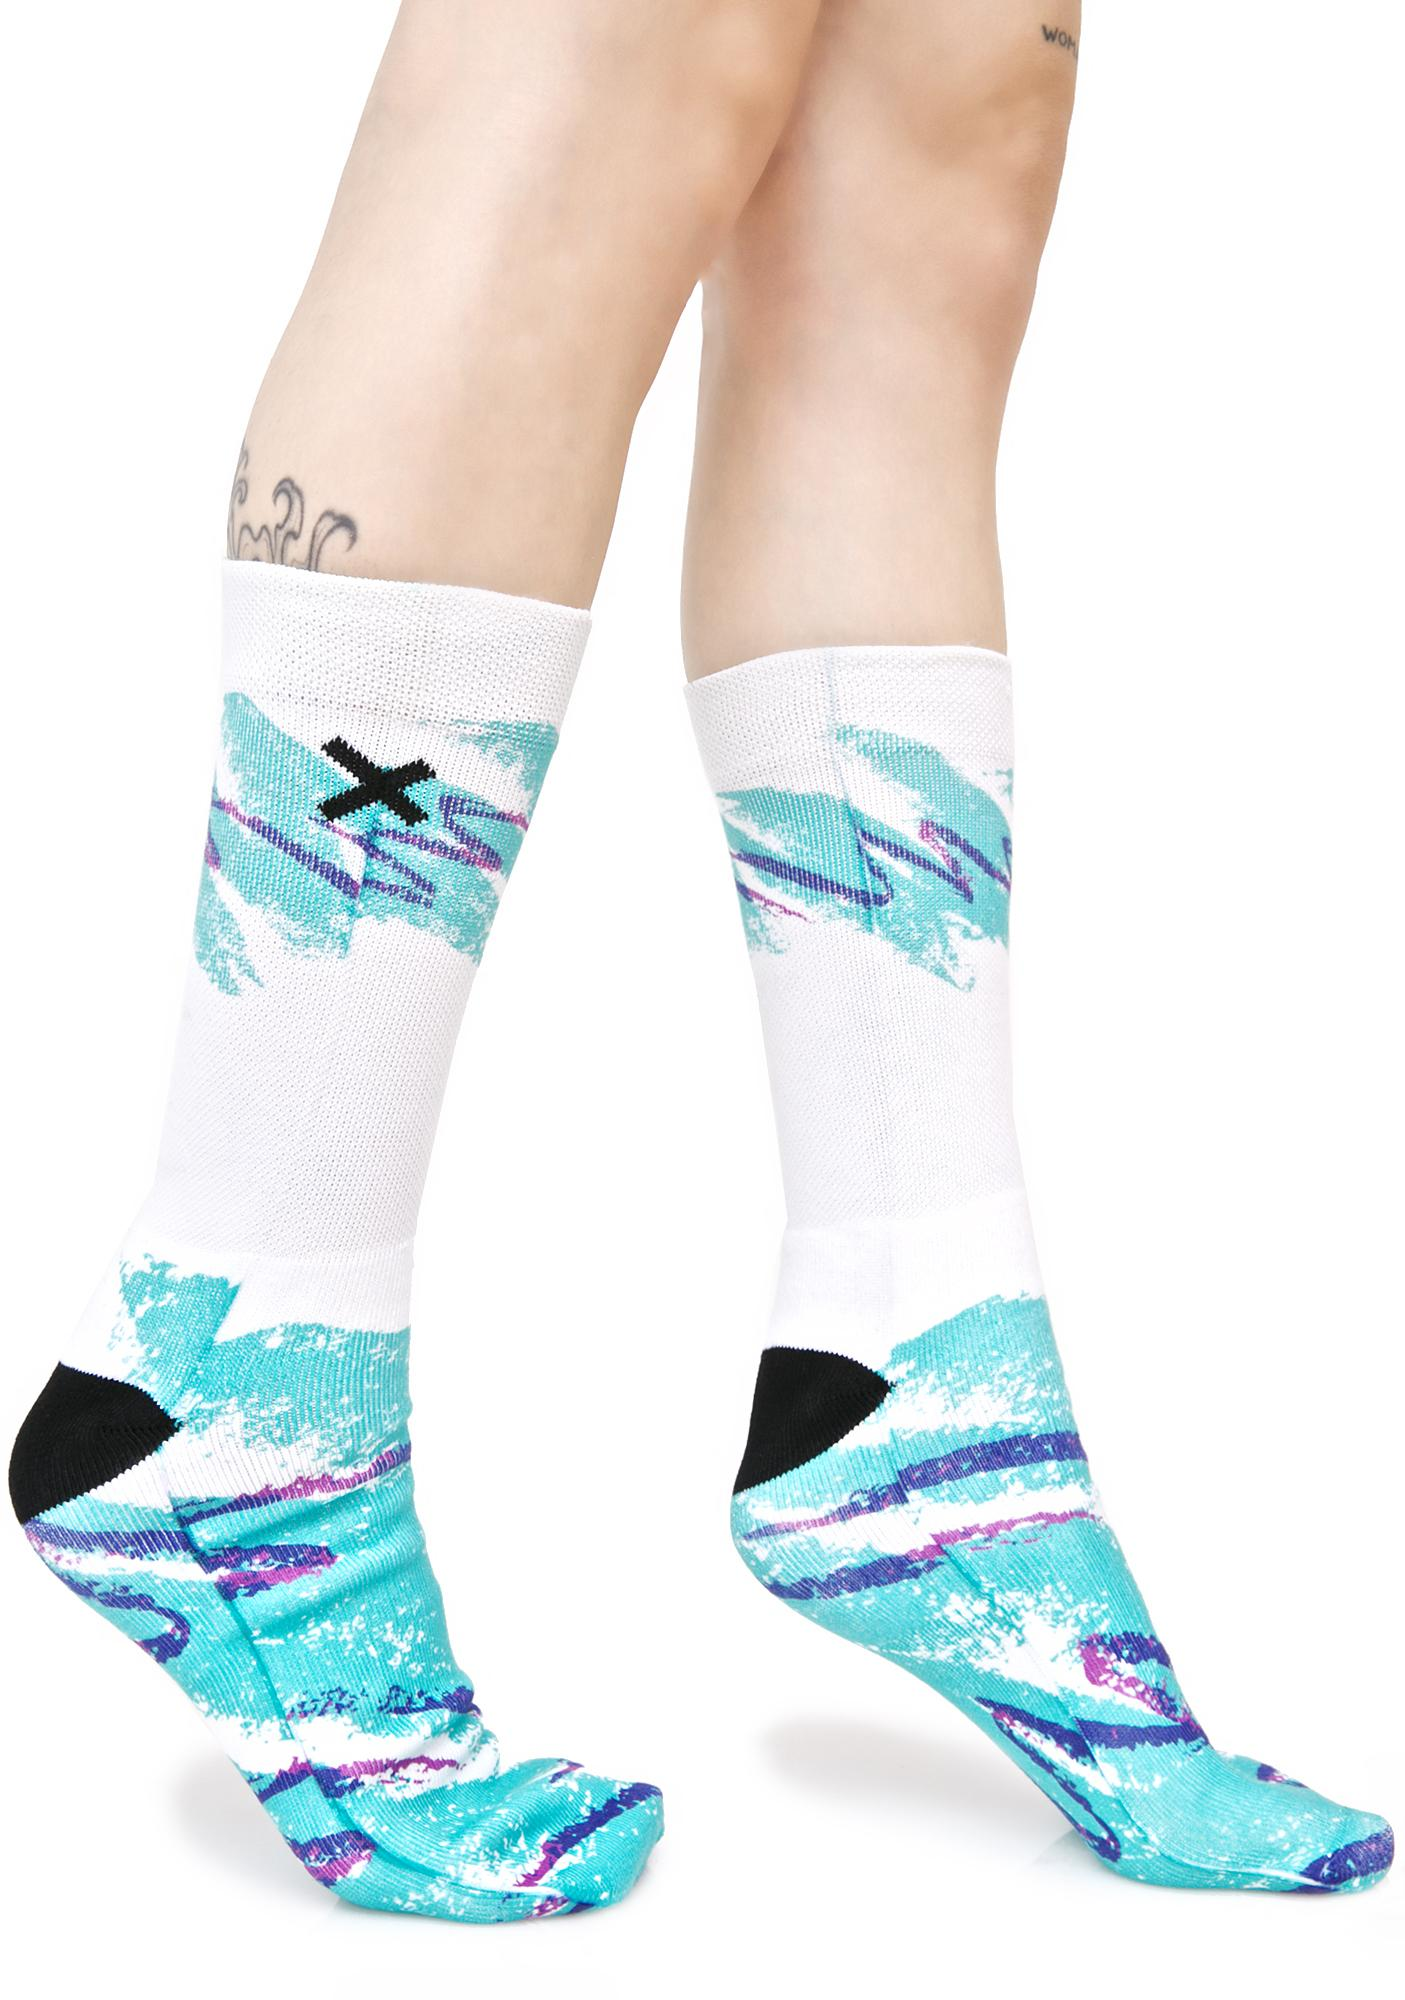 Odd Sox Jazz Feet Socks